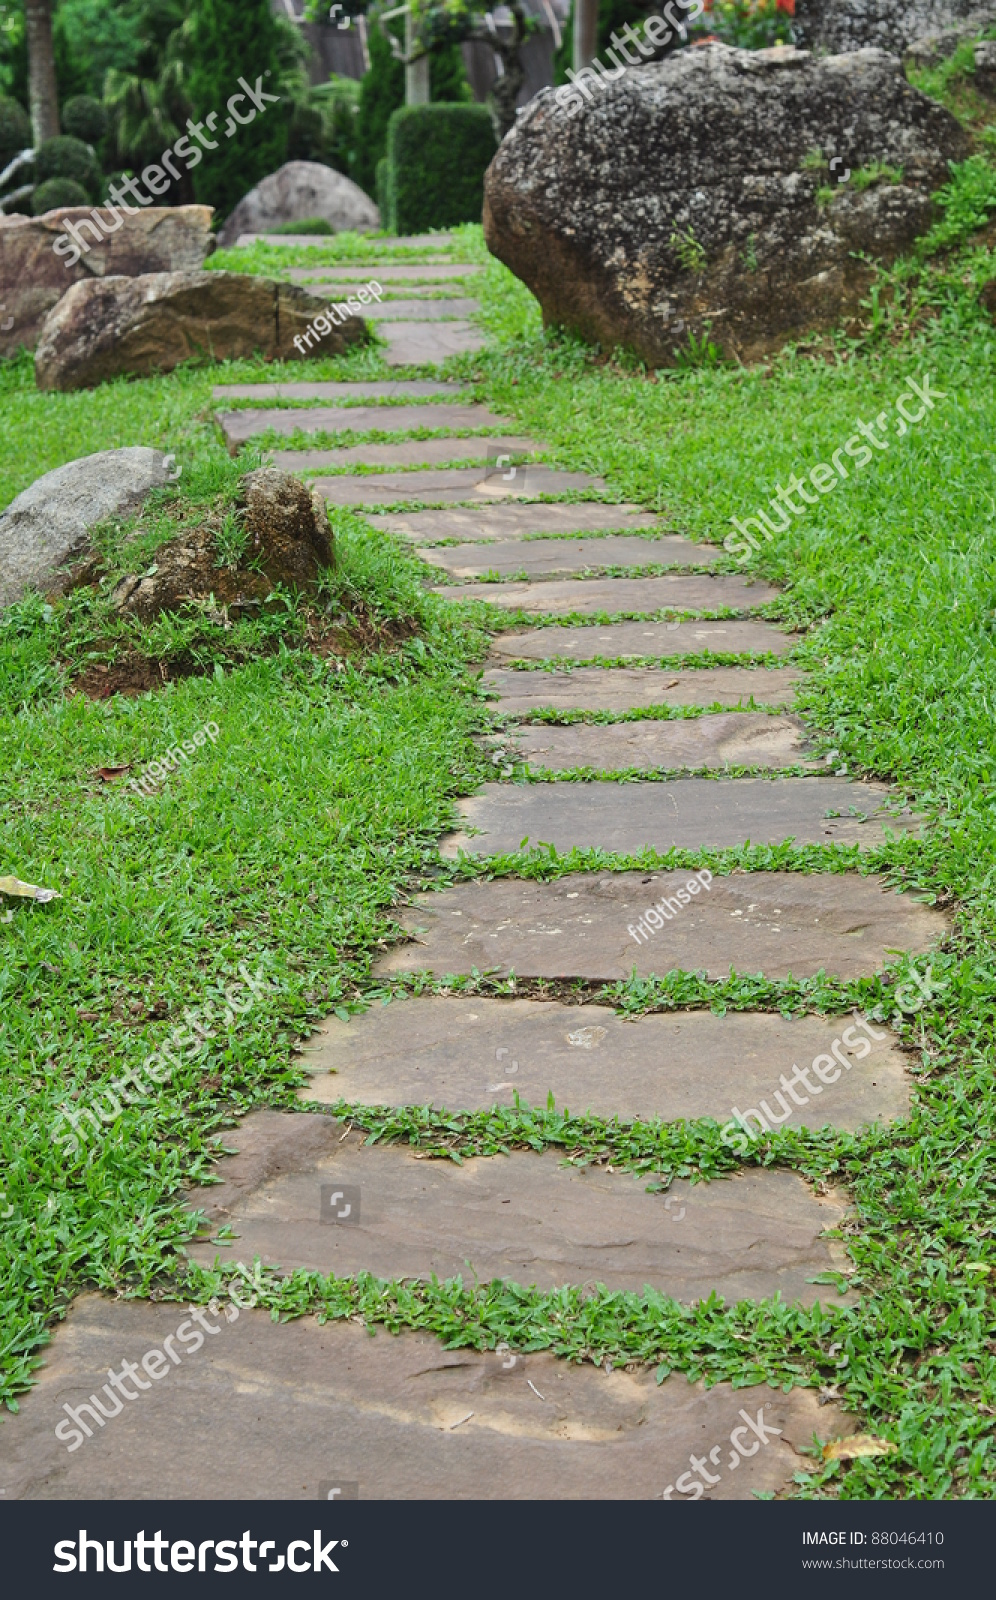 Garden stone path grass growing between stock photo for Stone path in grass